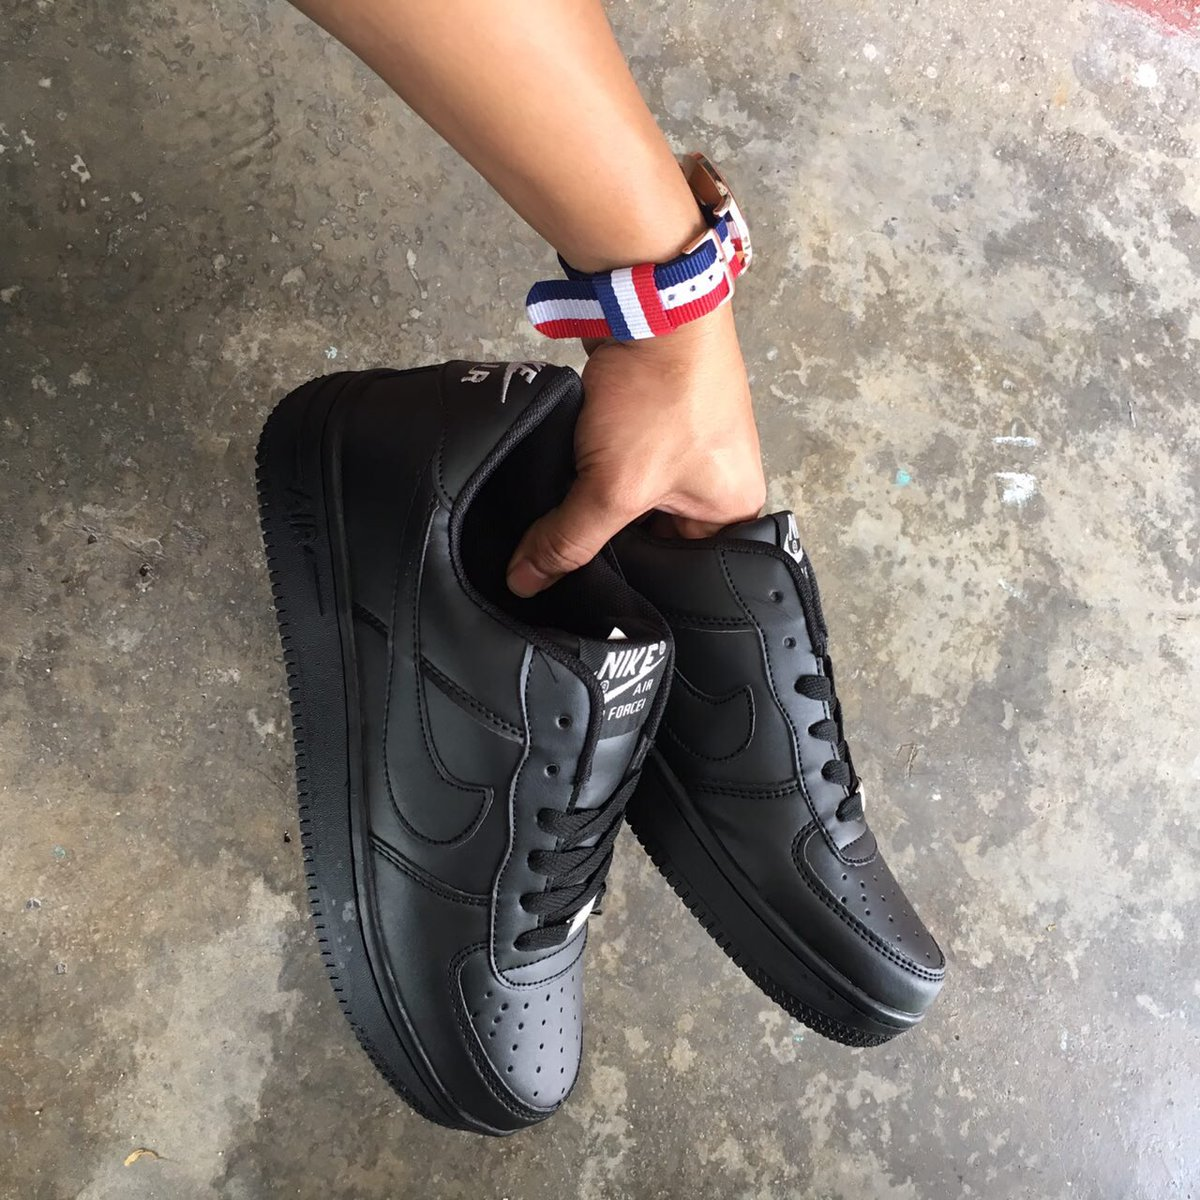 e277694d59c324 Nike Air Force Black Size  - 36-45 Euro Harga Offer  - RM 80 Only SM (inc  postage) RM 85 Only SS (inc postage) WhatsApp  - 0111-621  8182pic.twitter.com  ...